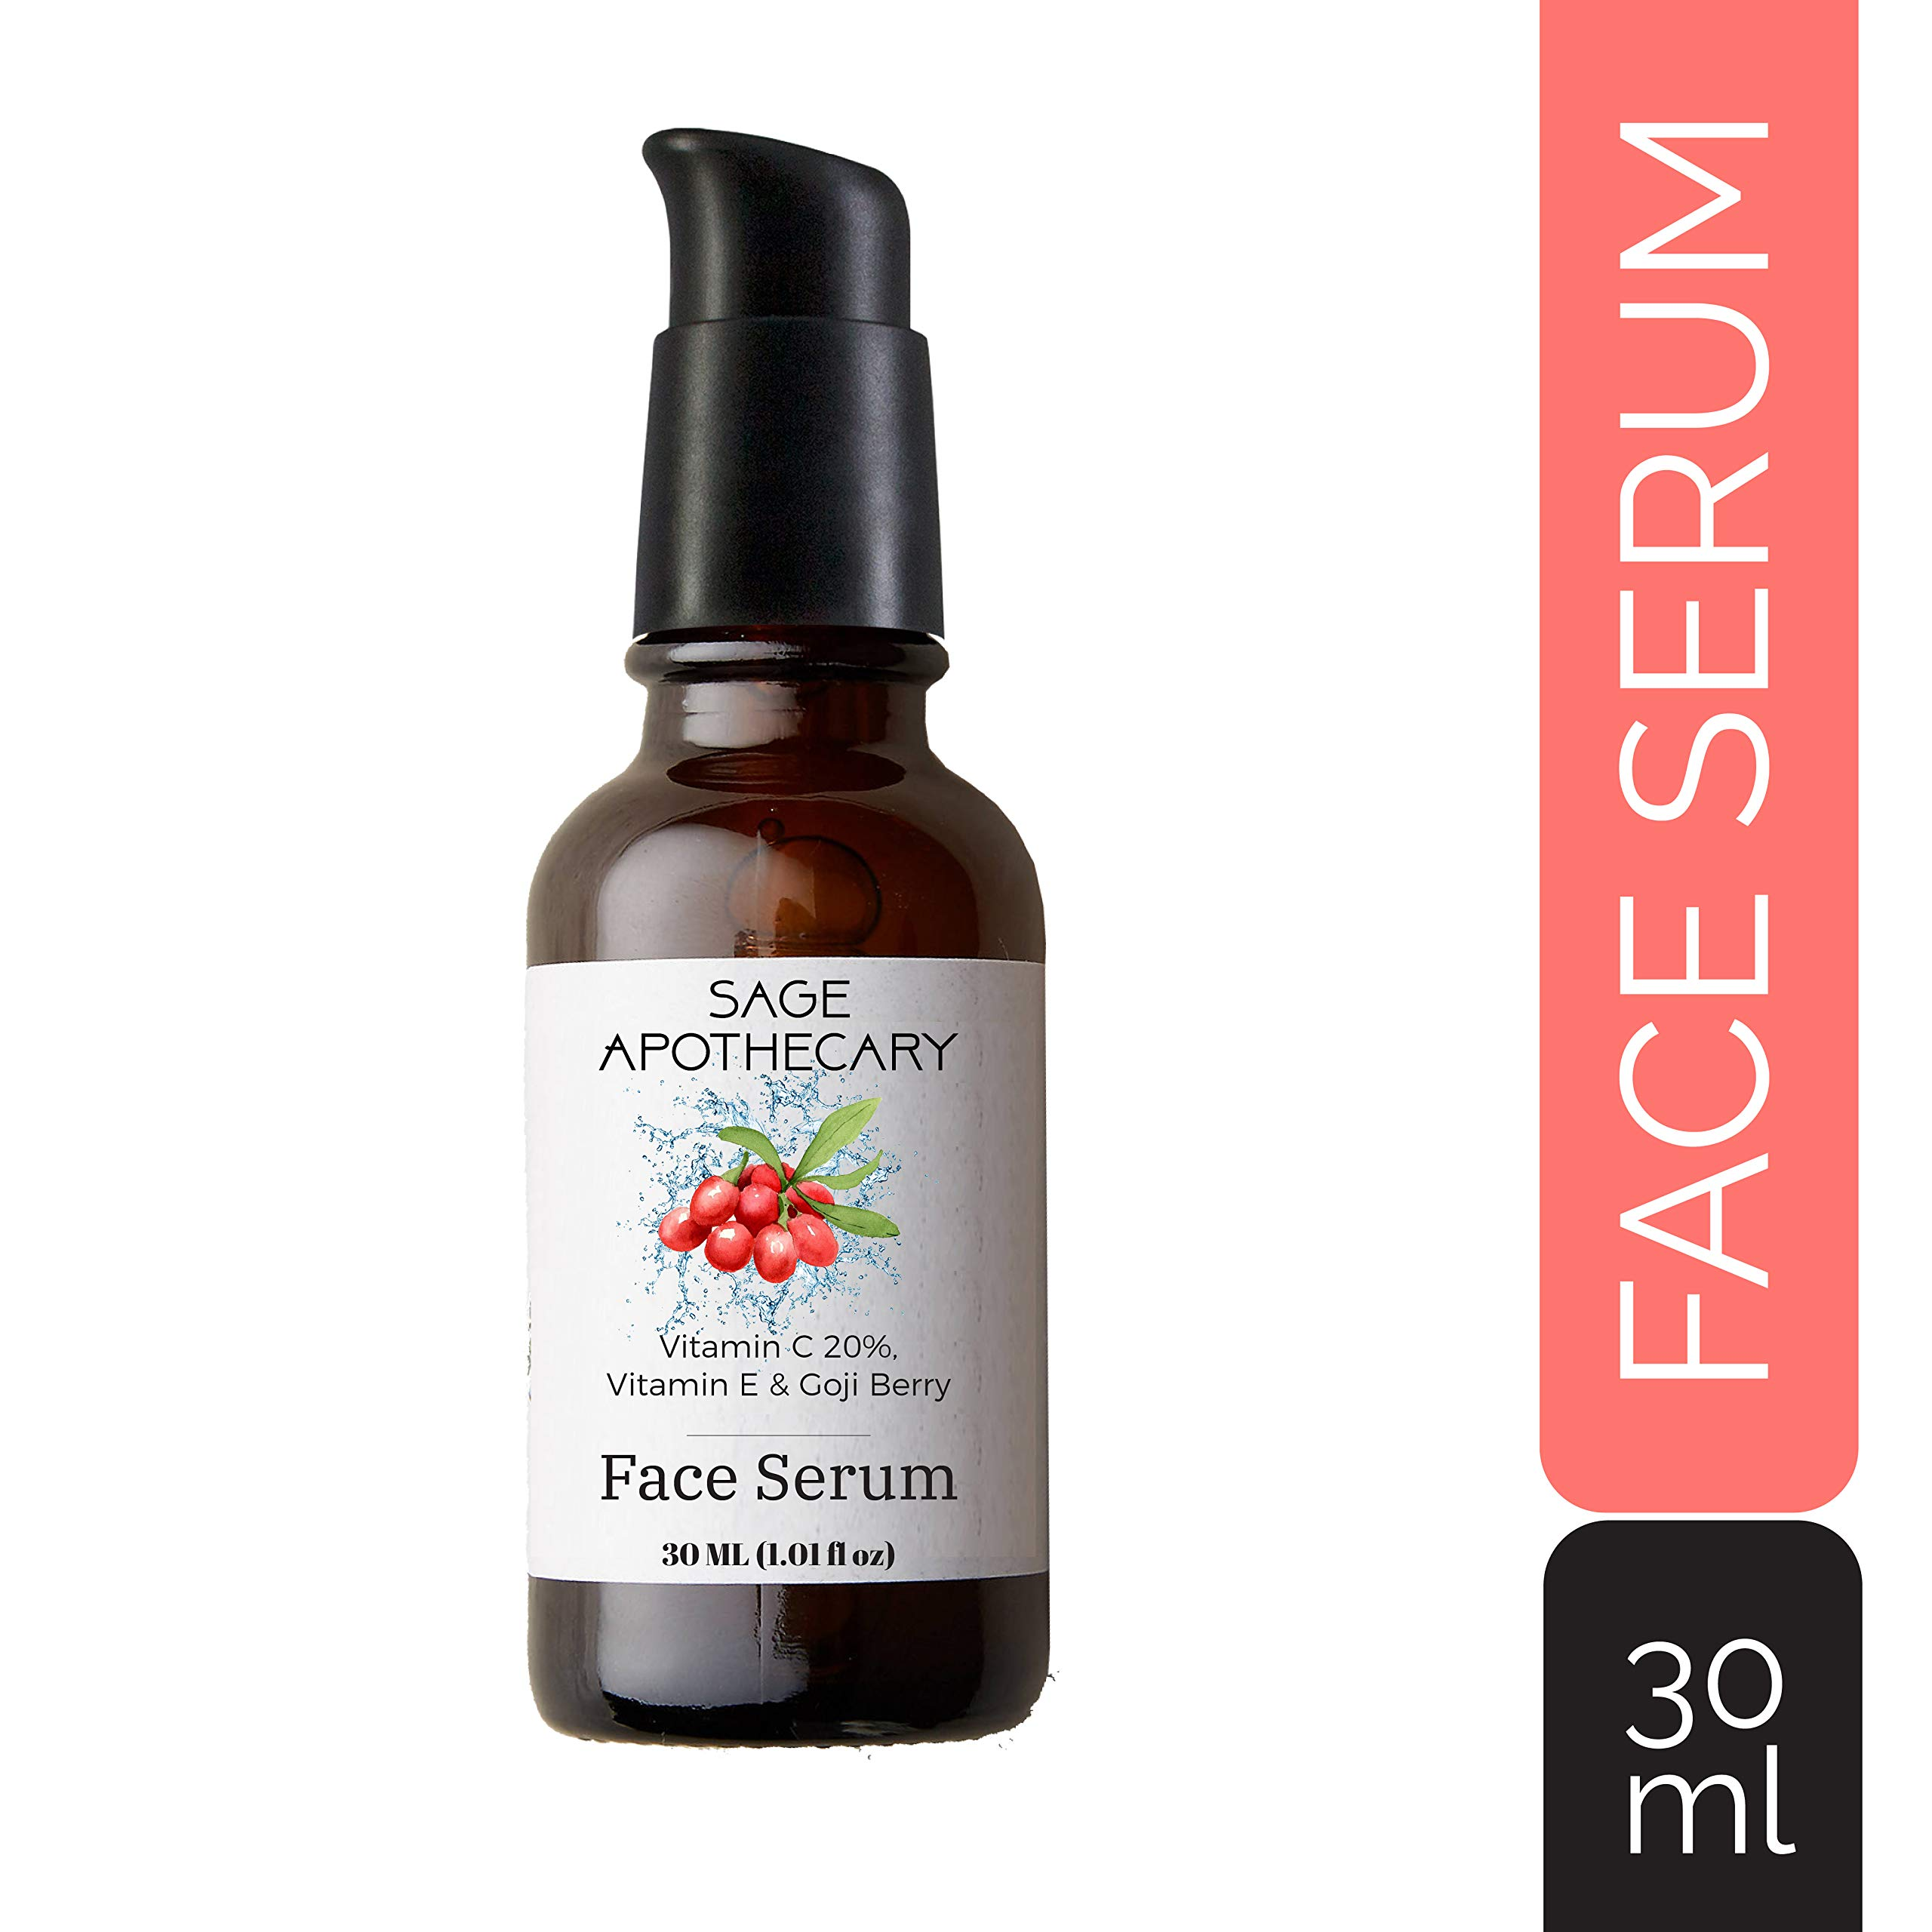 Sage Apothecary Vitamin C 20%, Vitamin E & Goji Berry Face Serum with Hyaluronic acid, 30ML product image